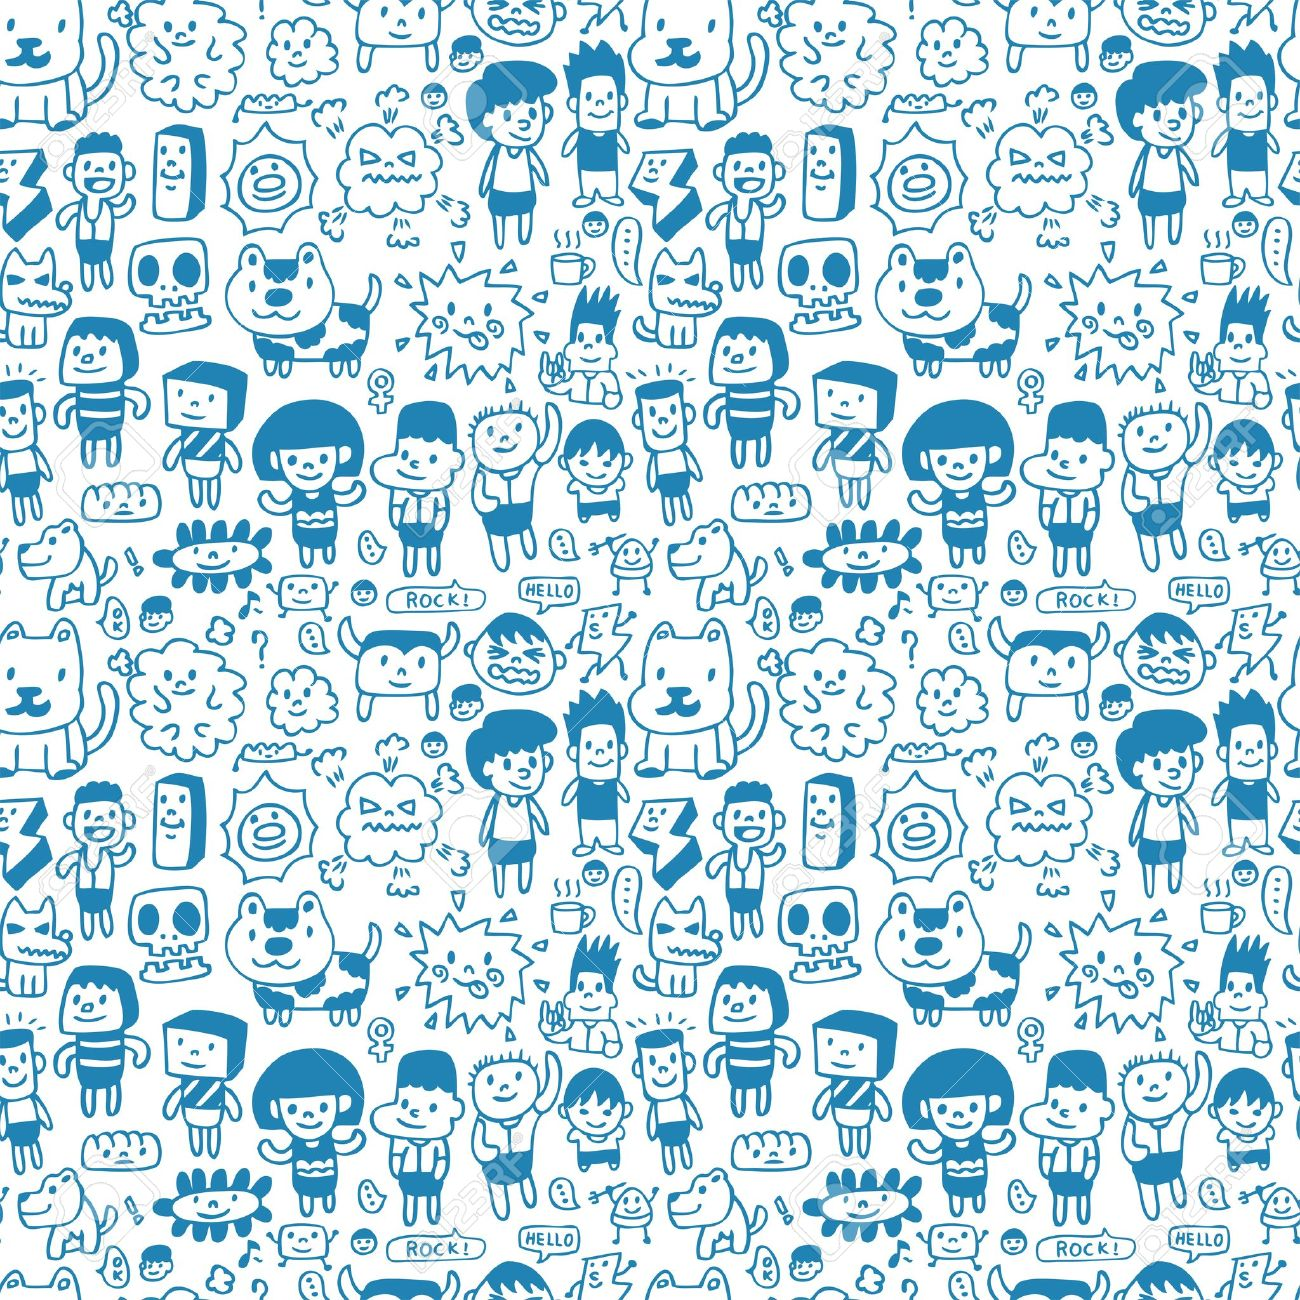 1300x1300 12816563 Seamless Cartoon Pattern Stock Vector Kid Faces Drawing